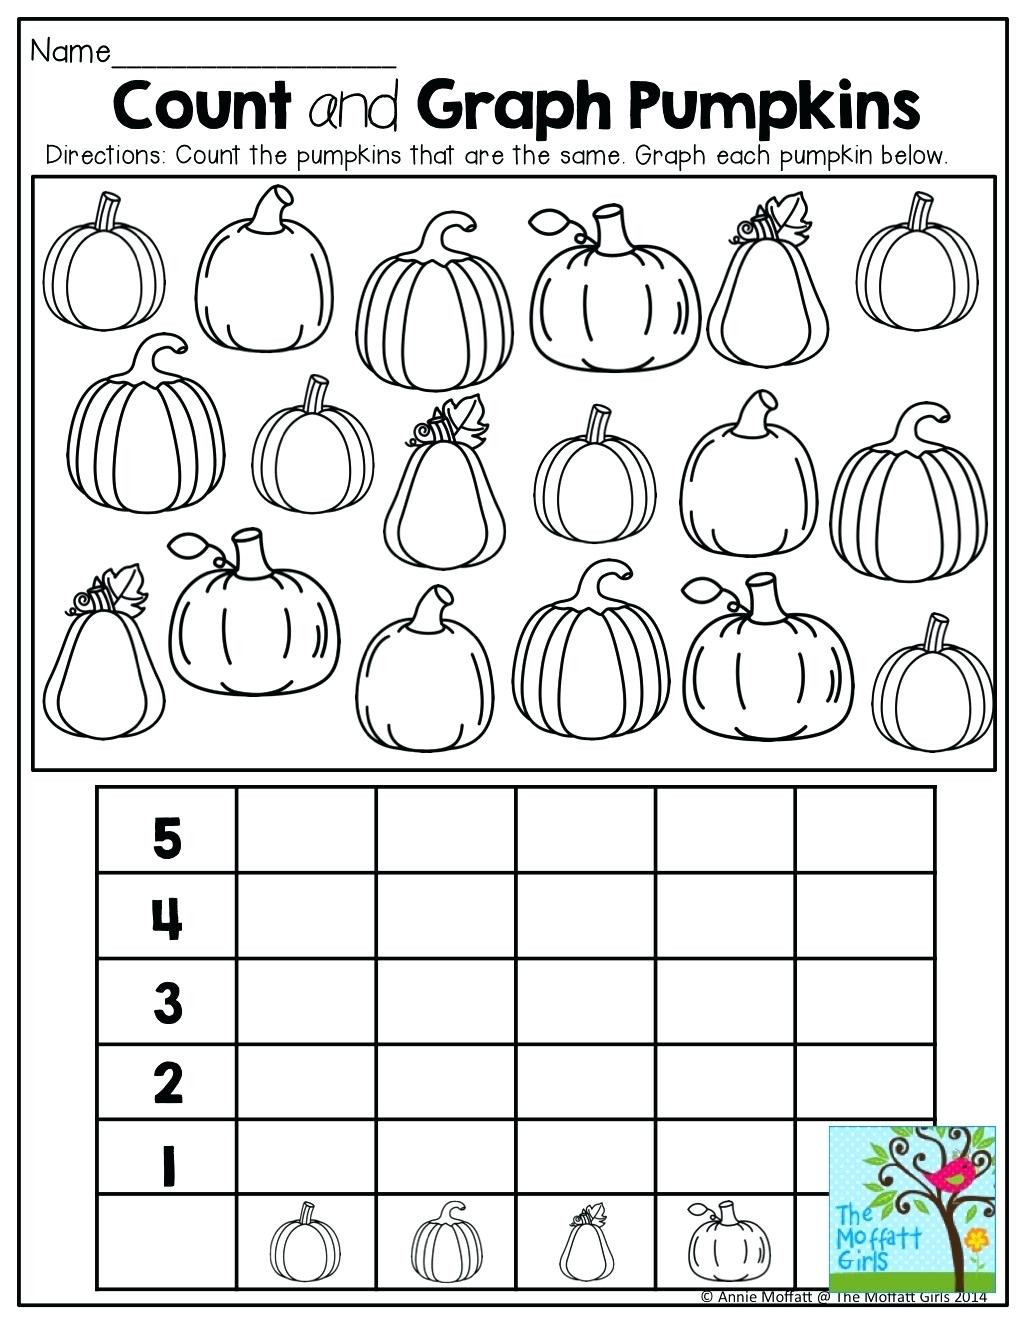 Phonics Worksheets 1st Grade Worksheet Free Calligraphy Worksheets for Beginners 1st